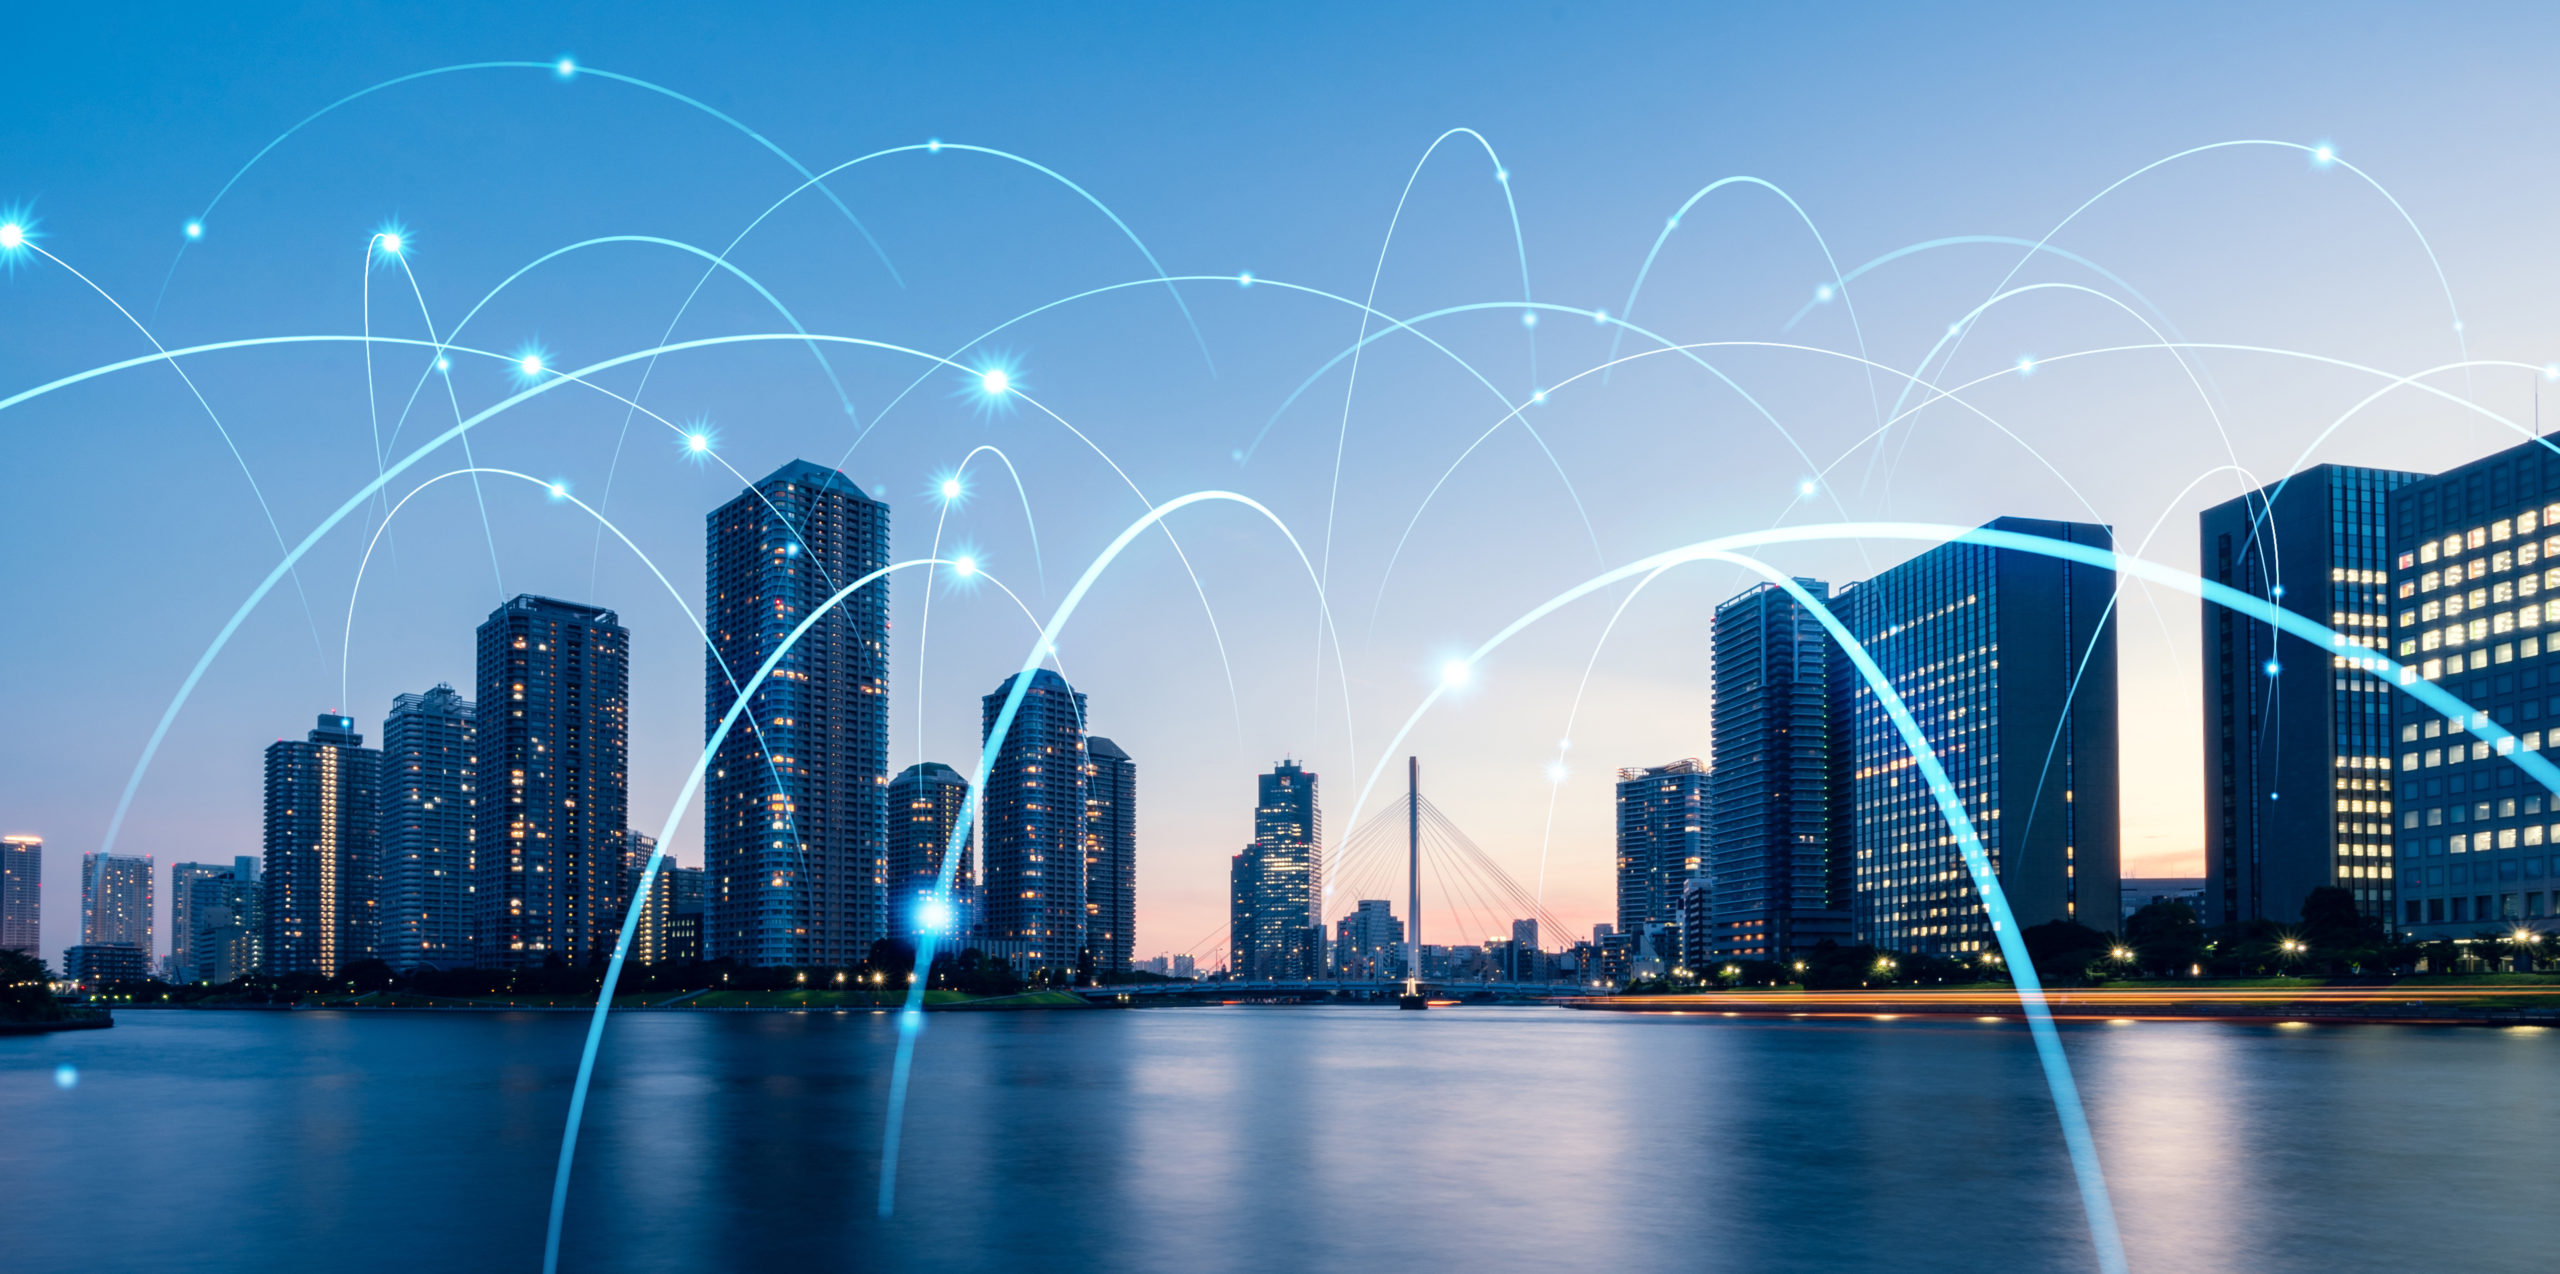 Edge Computing: Extending Open Source and Hybrid Cloud to Drive the Next Wave of Digital Transformation